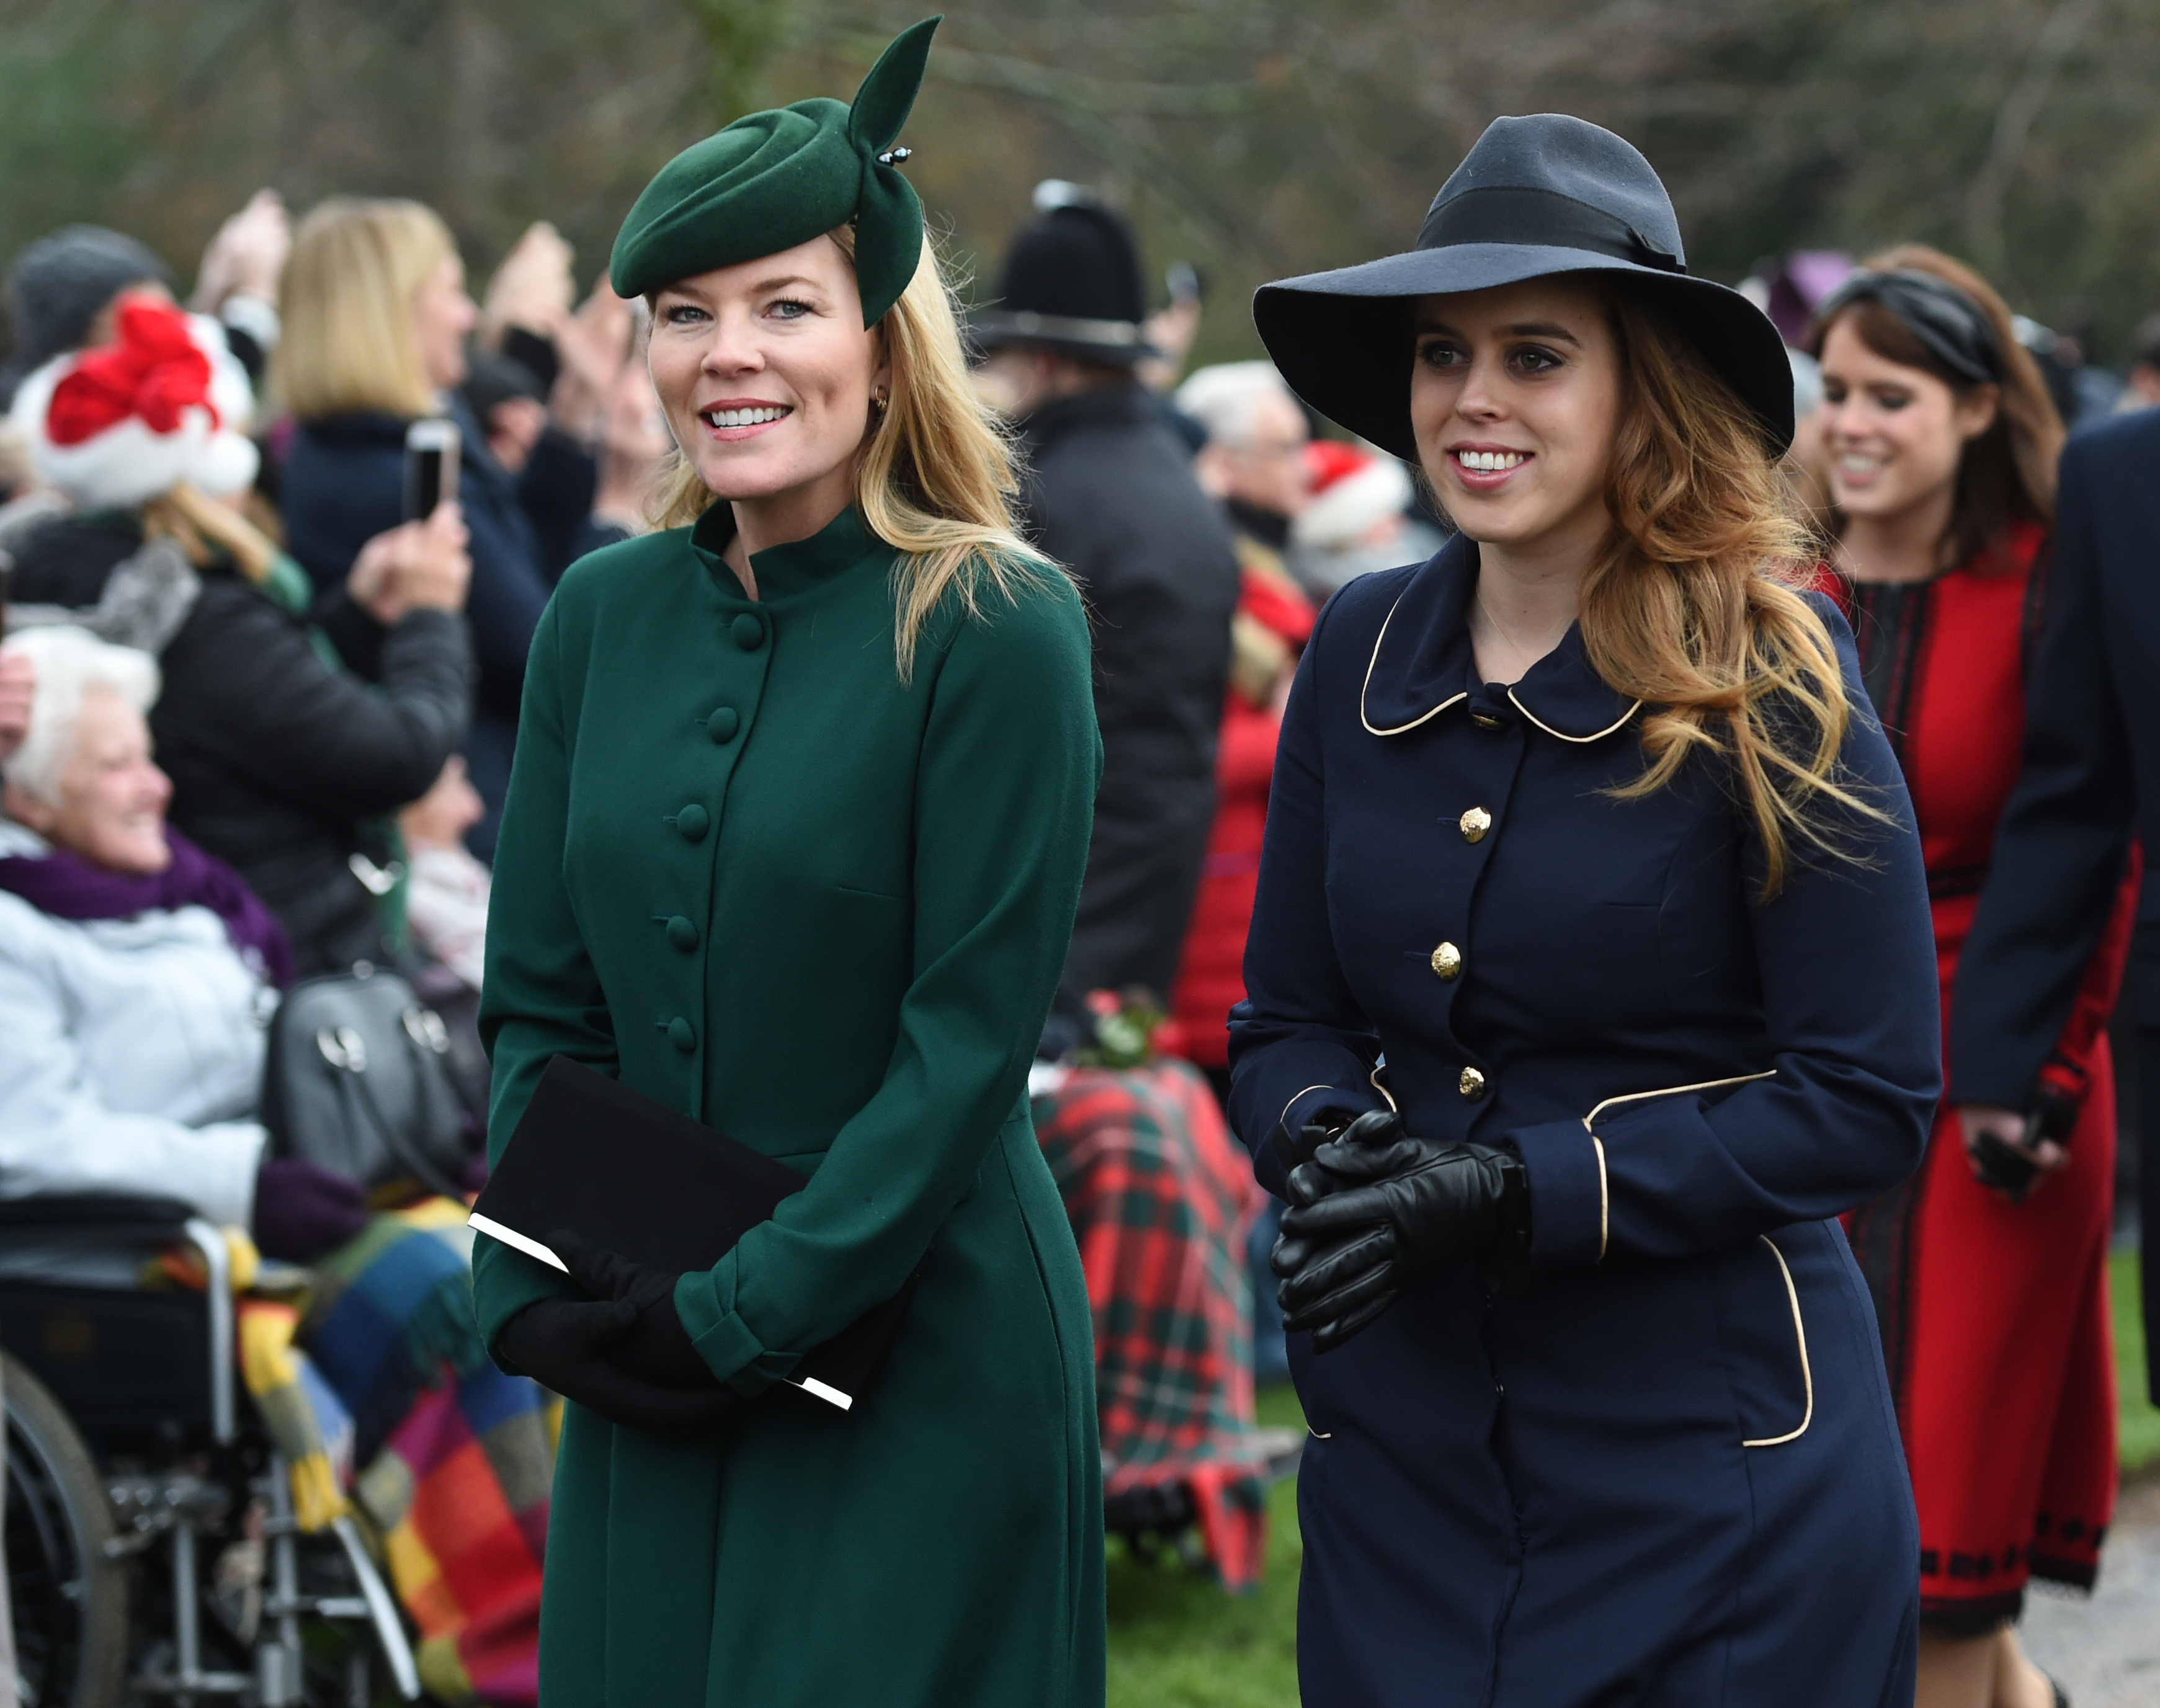 Arrival of The Royal Family at Sandringham Church, Christmas 2018